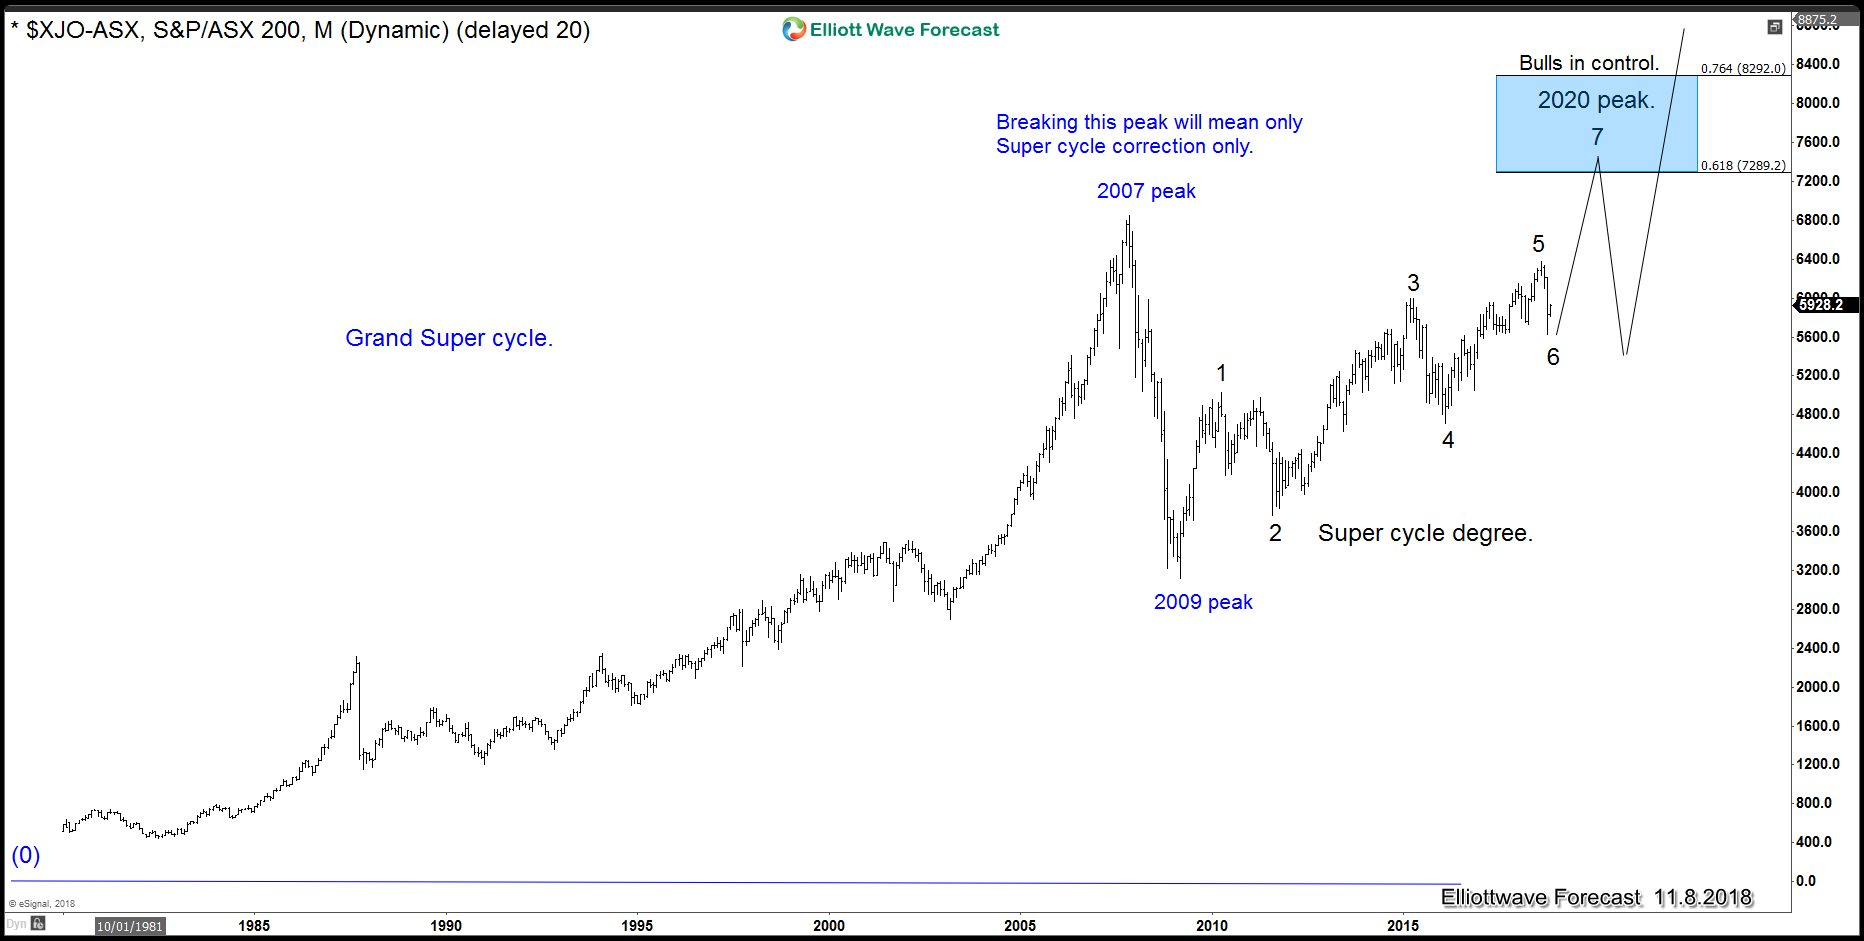 XJO-ASX Grand Super Cycle and Possible Timing for Recession